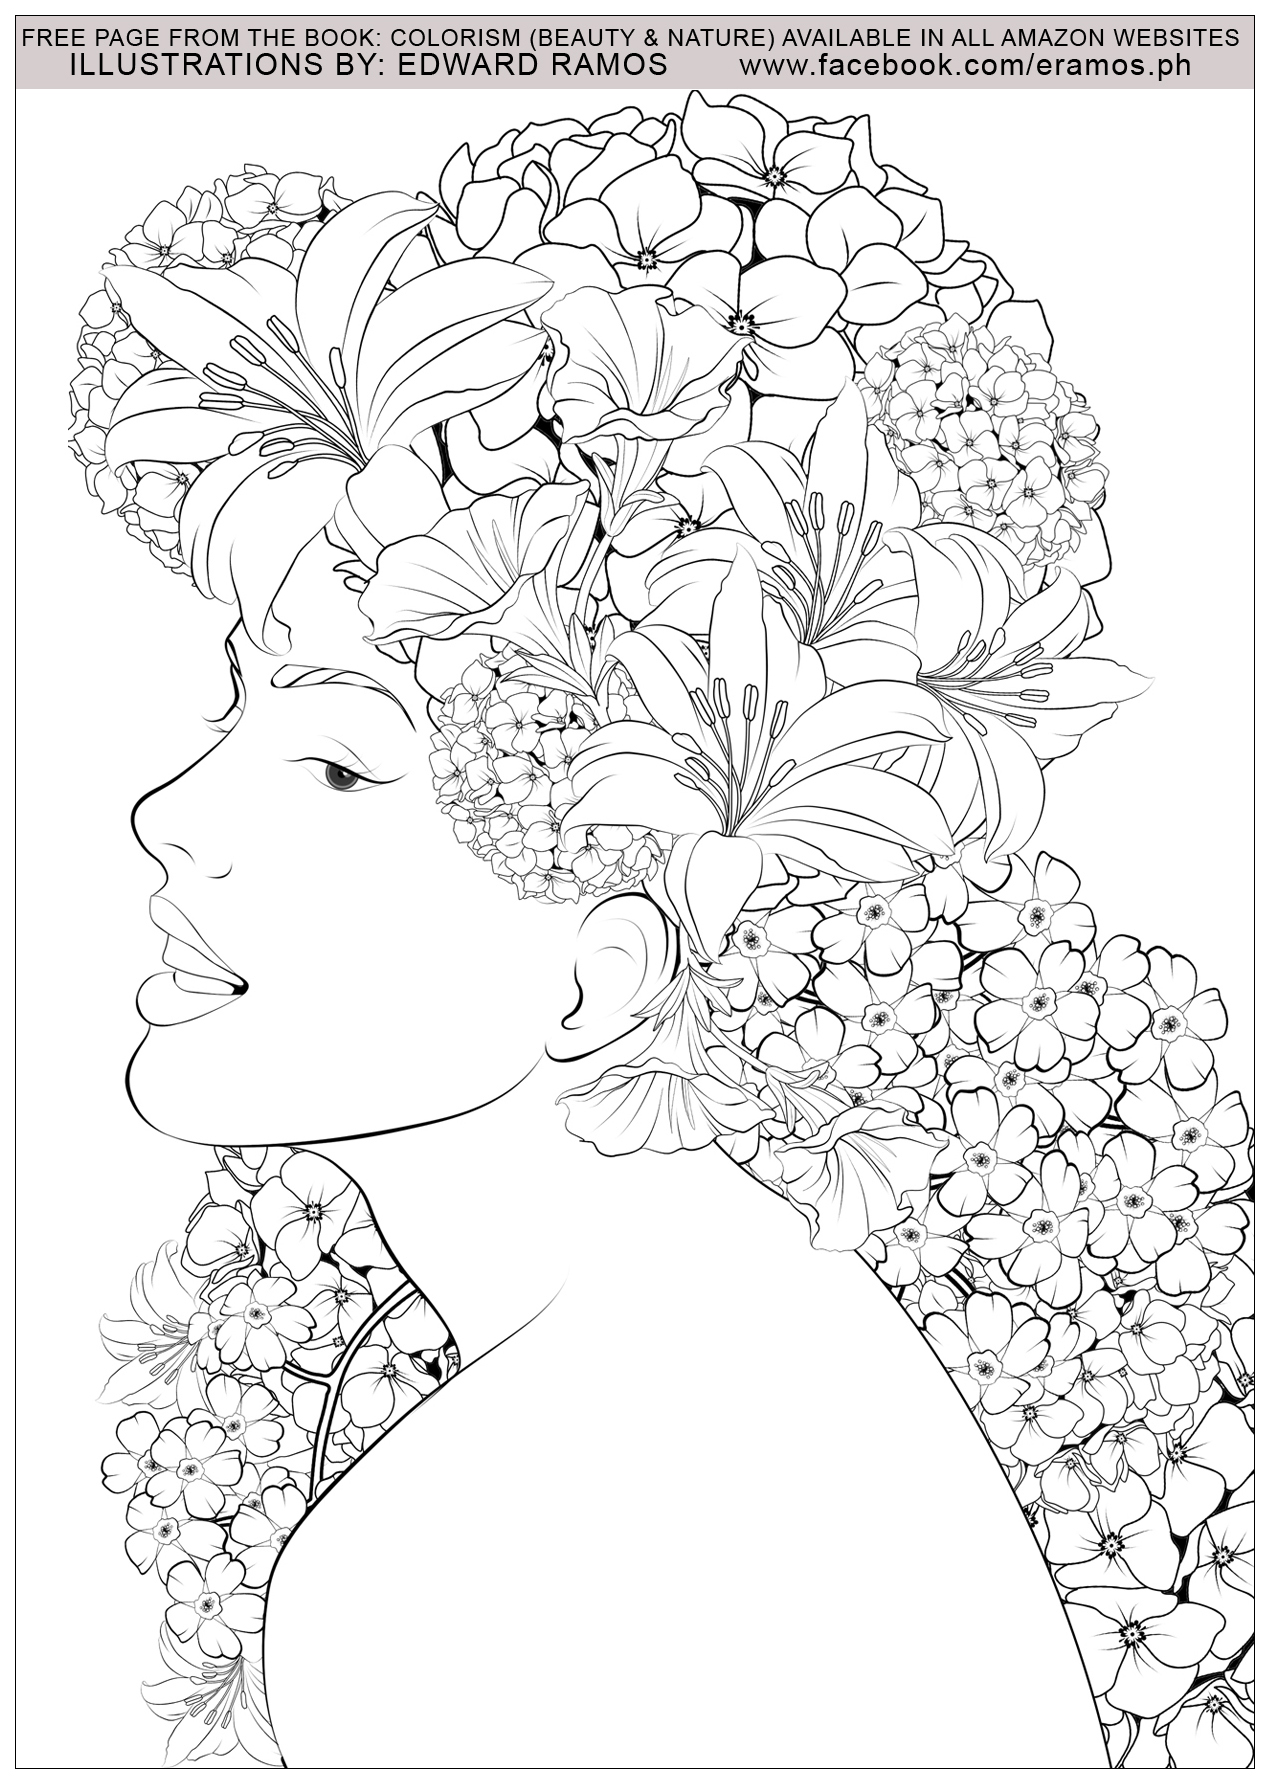 Coloring pictures of nature - Illustration From The Book Colorism Beauty Nature By Edward Ramos 8 Image